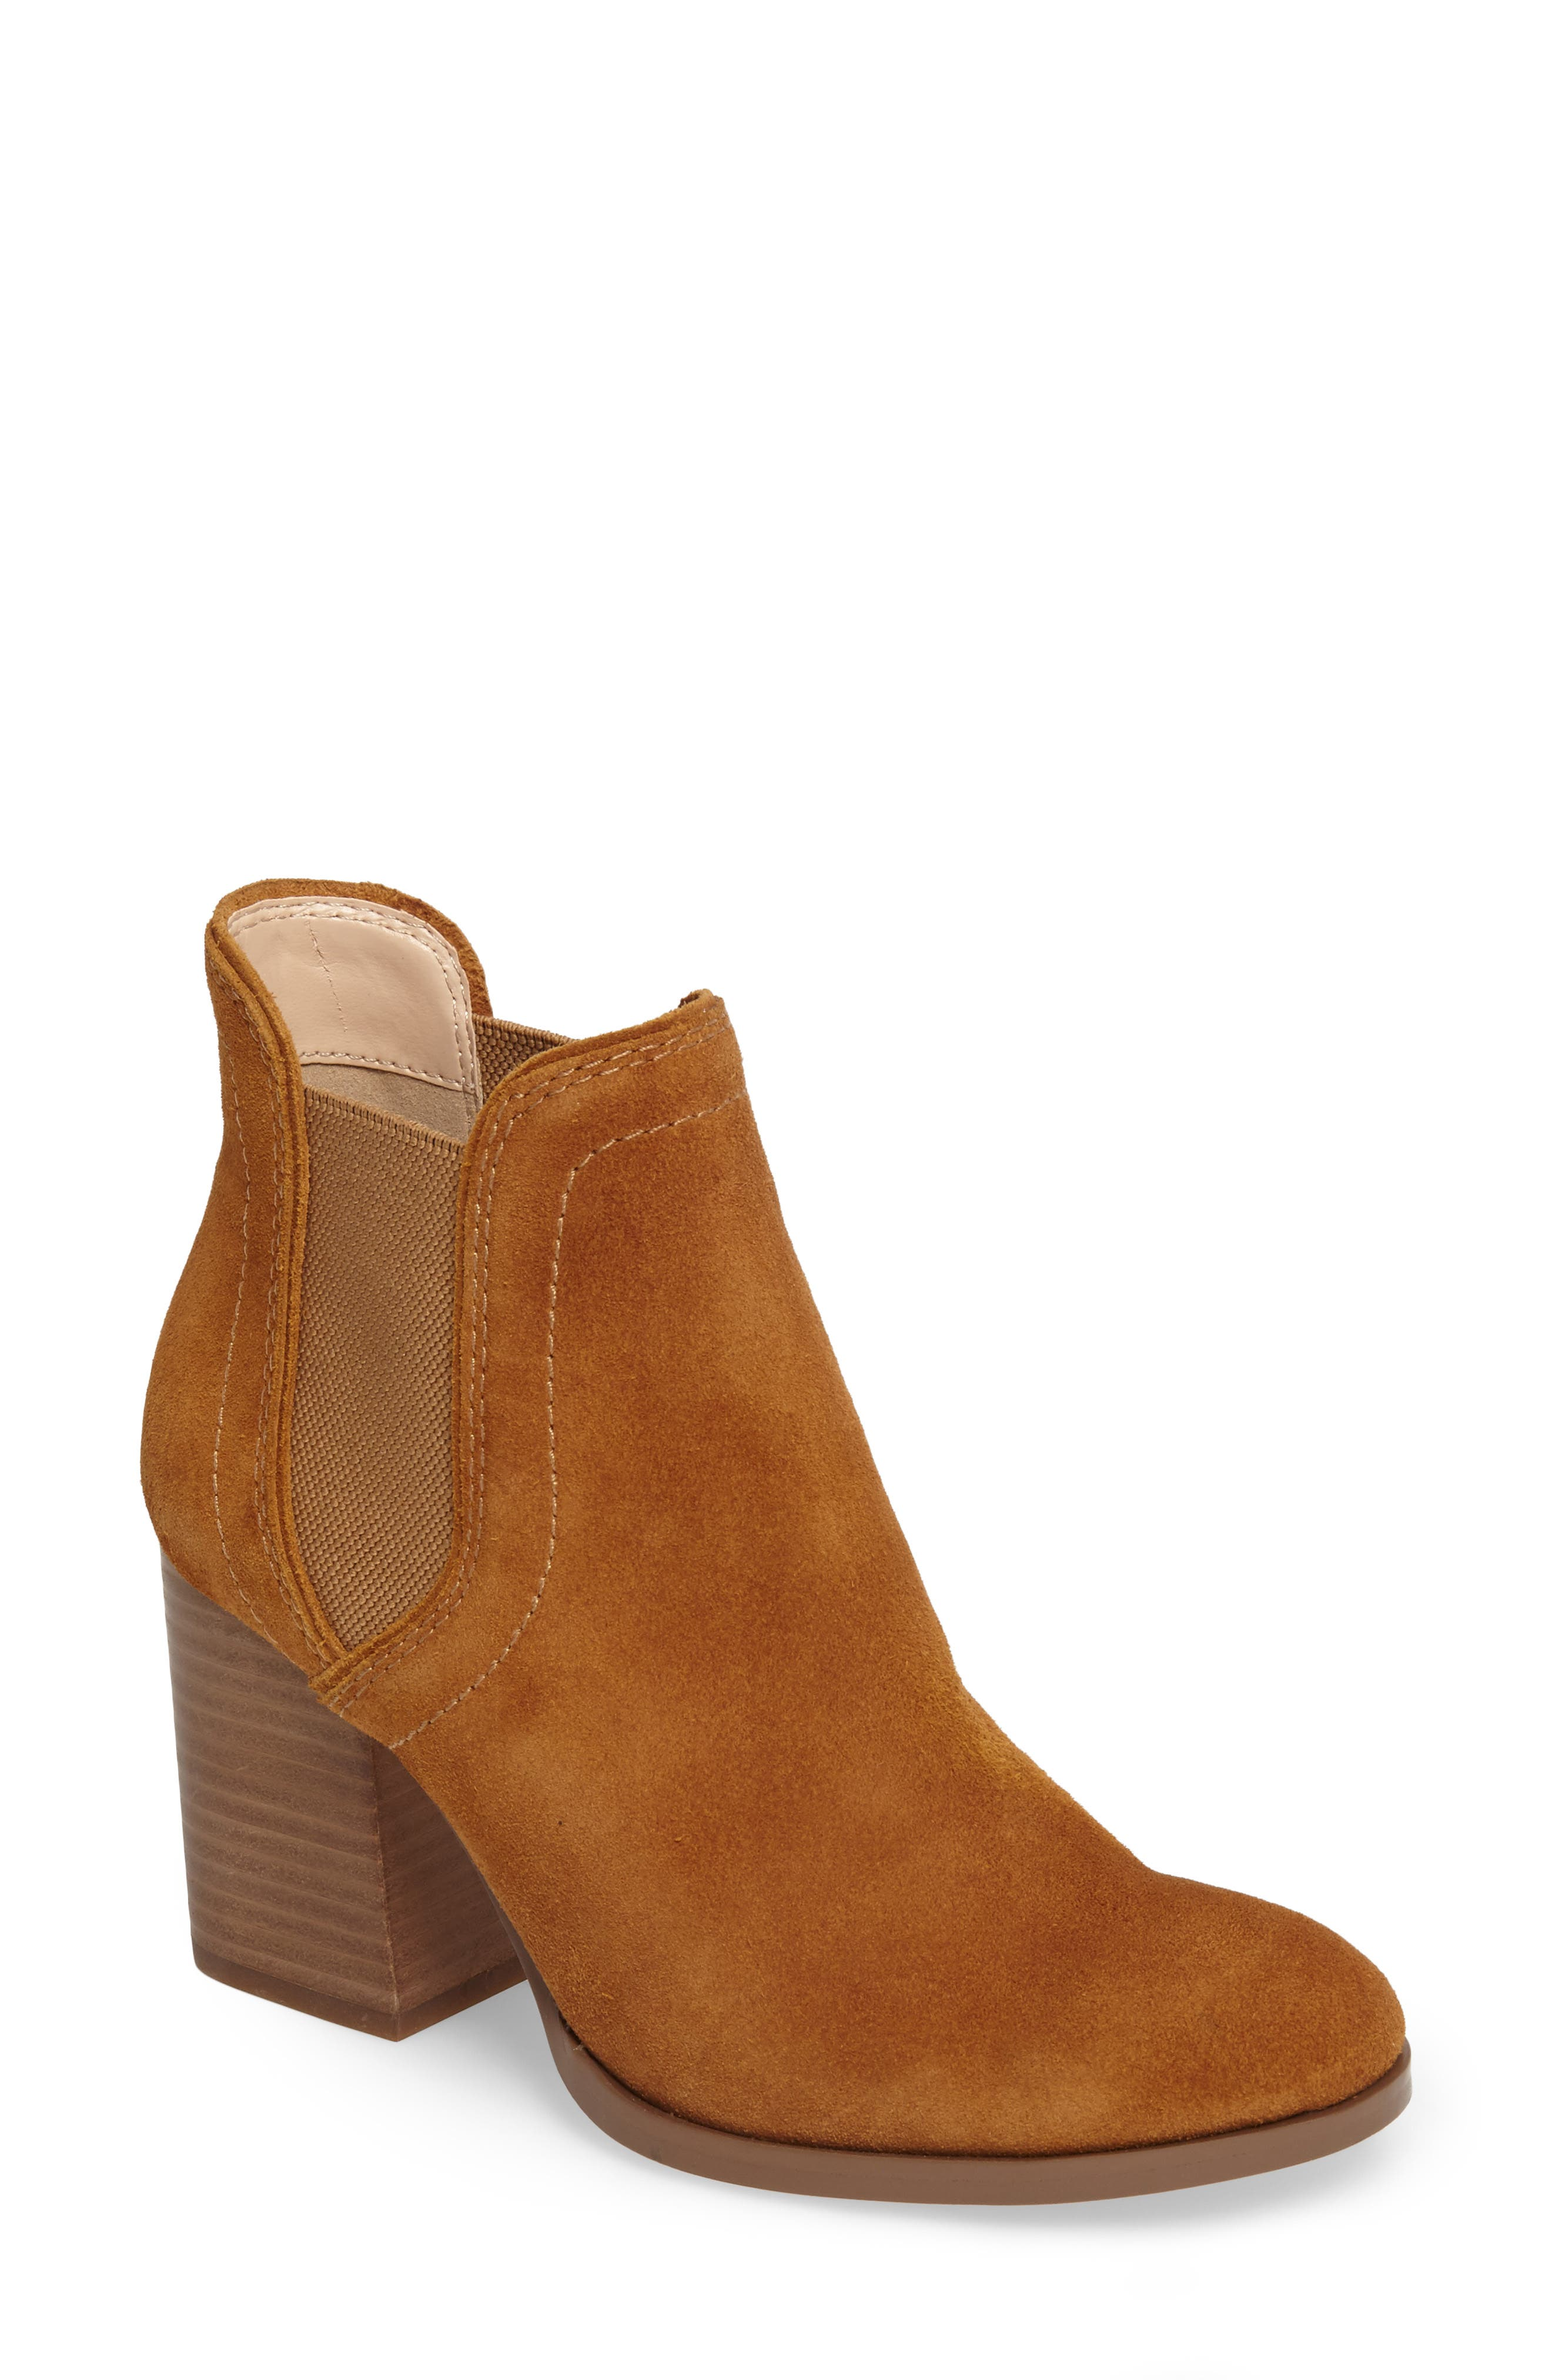 Alternate Image 1 Selected - Sole Society Carrillo Bootie (Women)